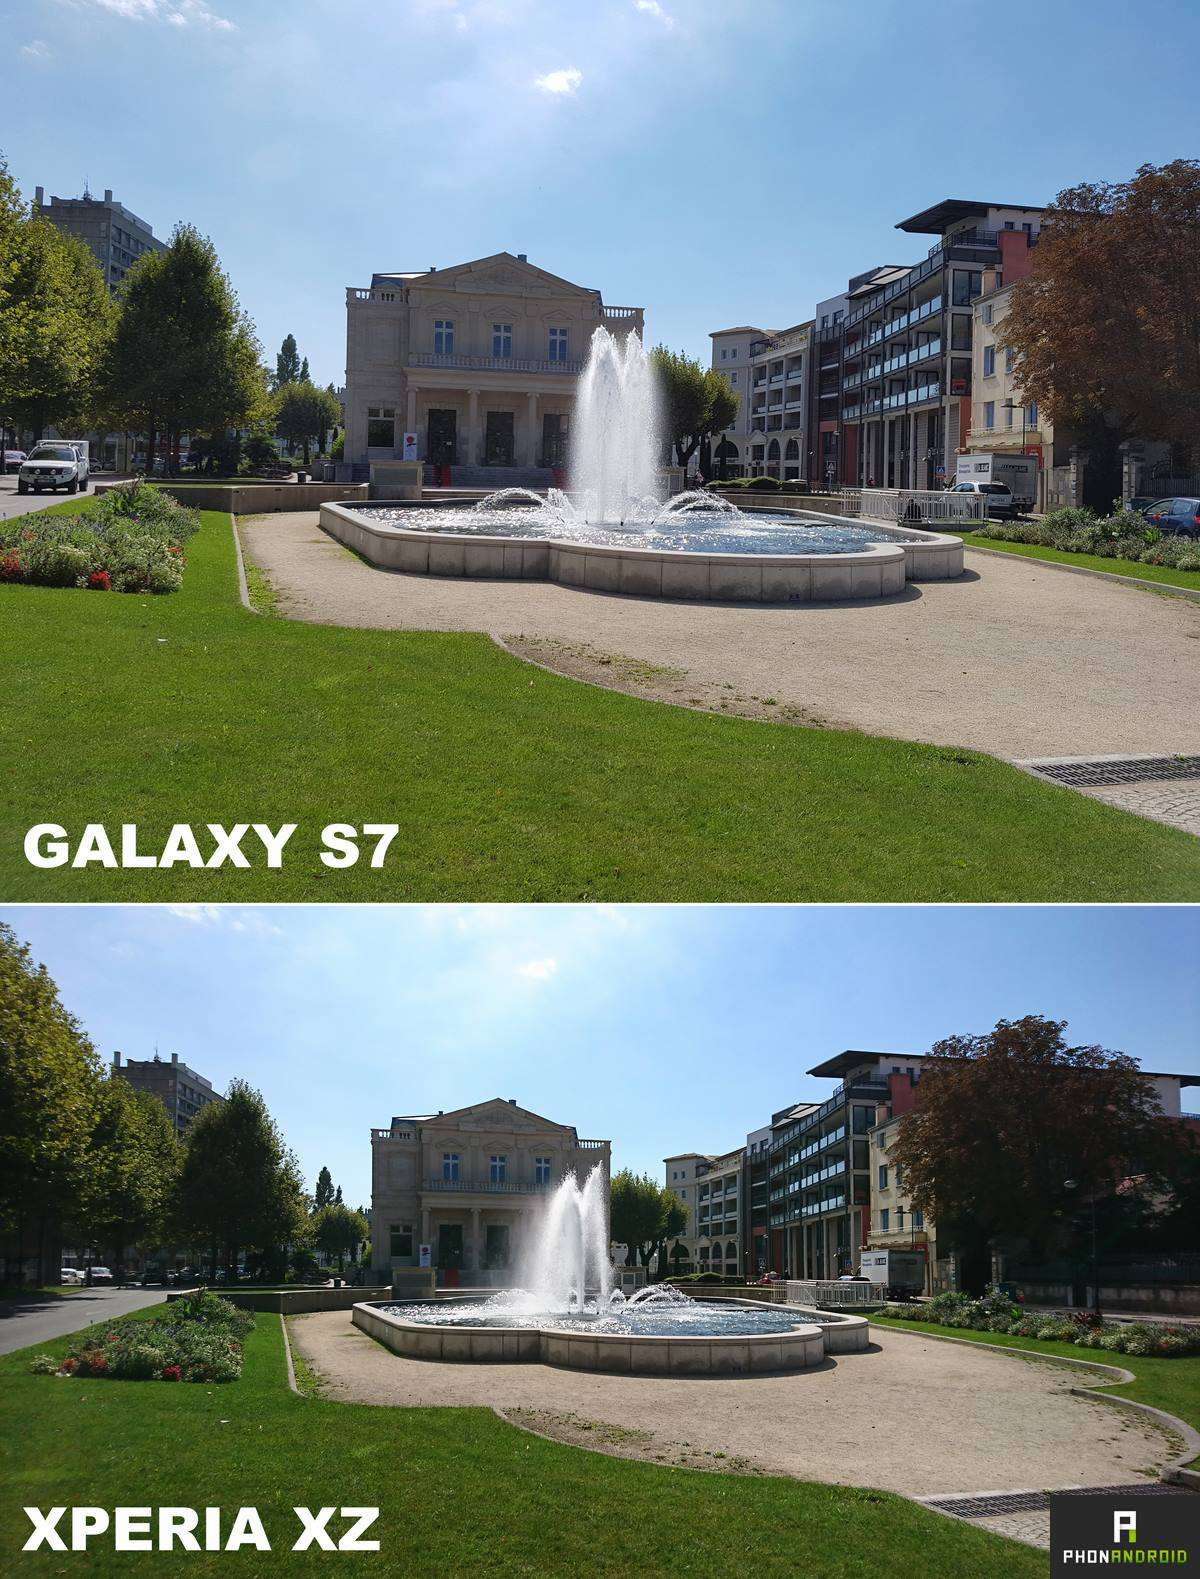 comparatif-photo-sony-xperia-xz-galaxy-s7